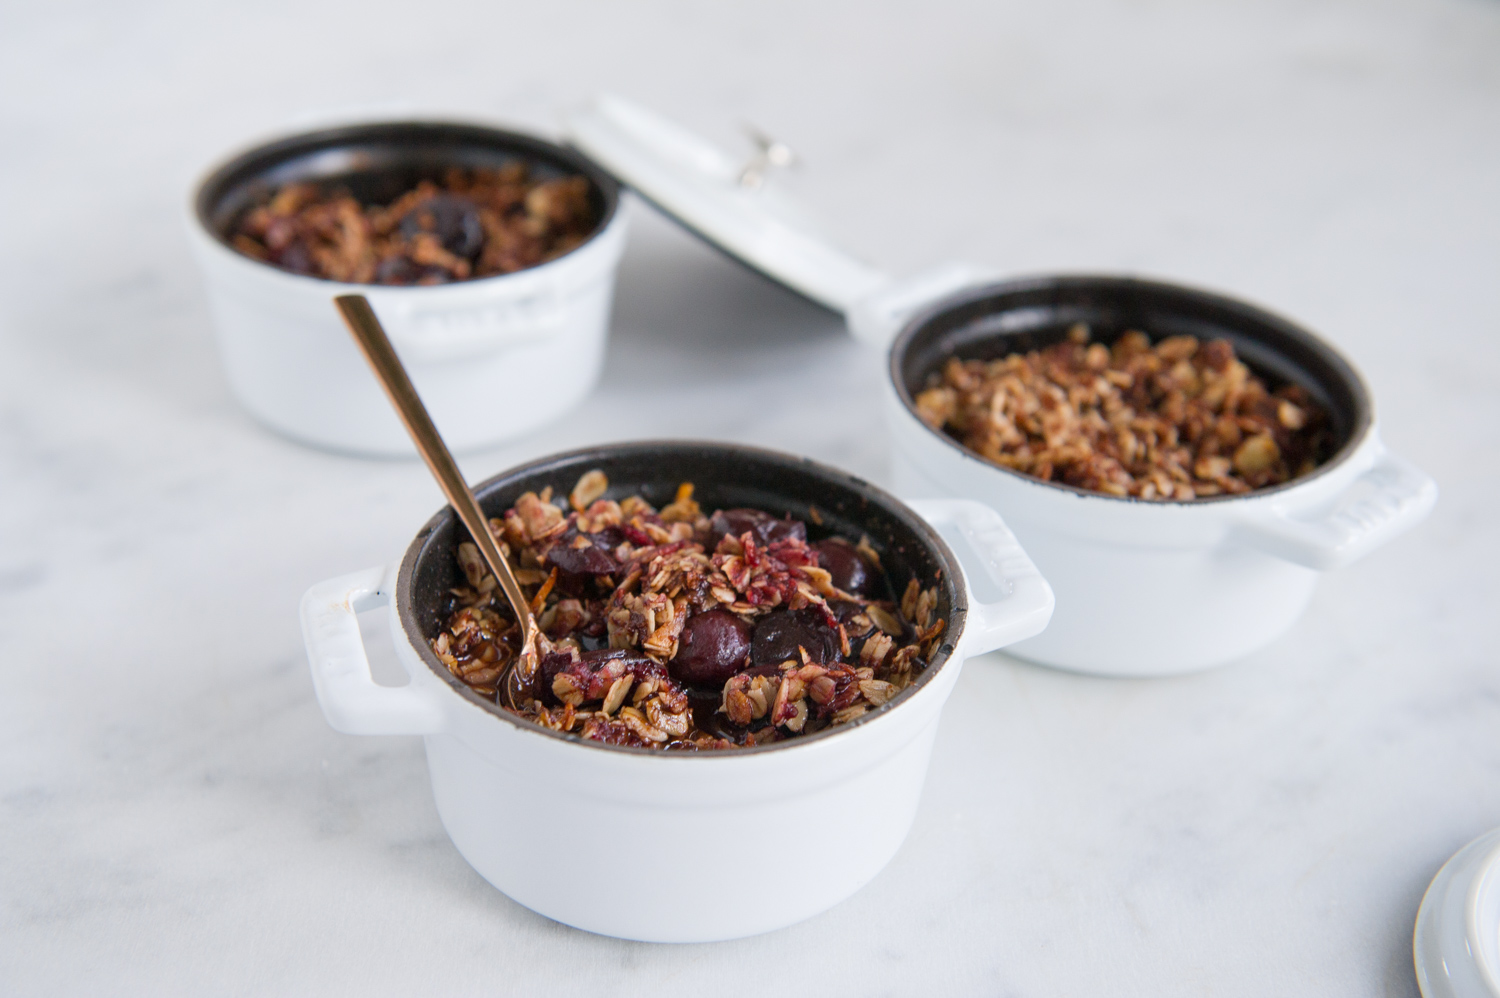 Baked Cherries with a Chocolate Almond Crumble. Gluten free, Vegan, Dairy free.